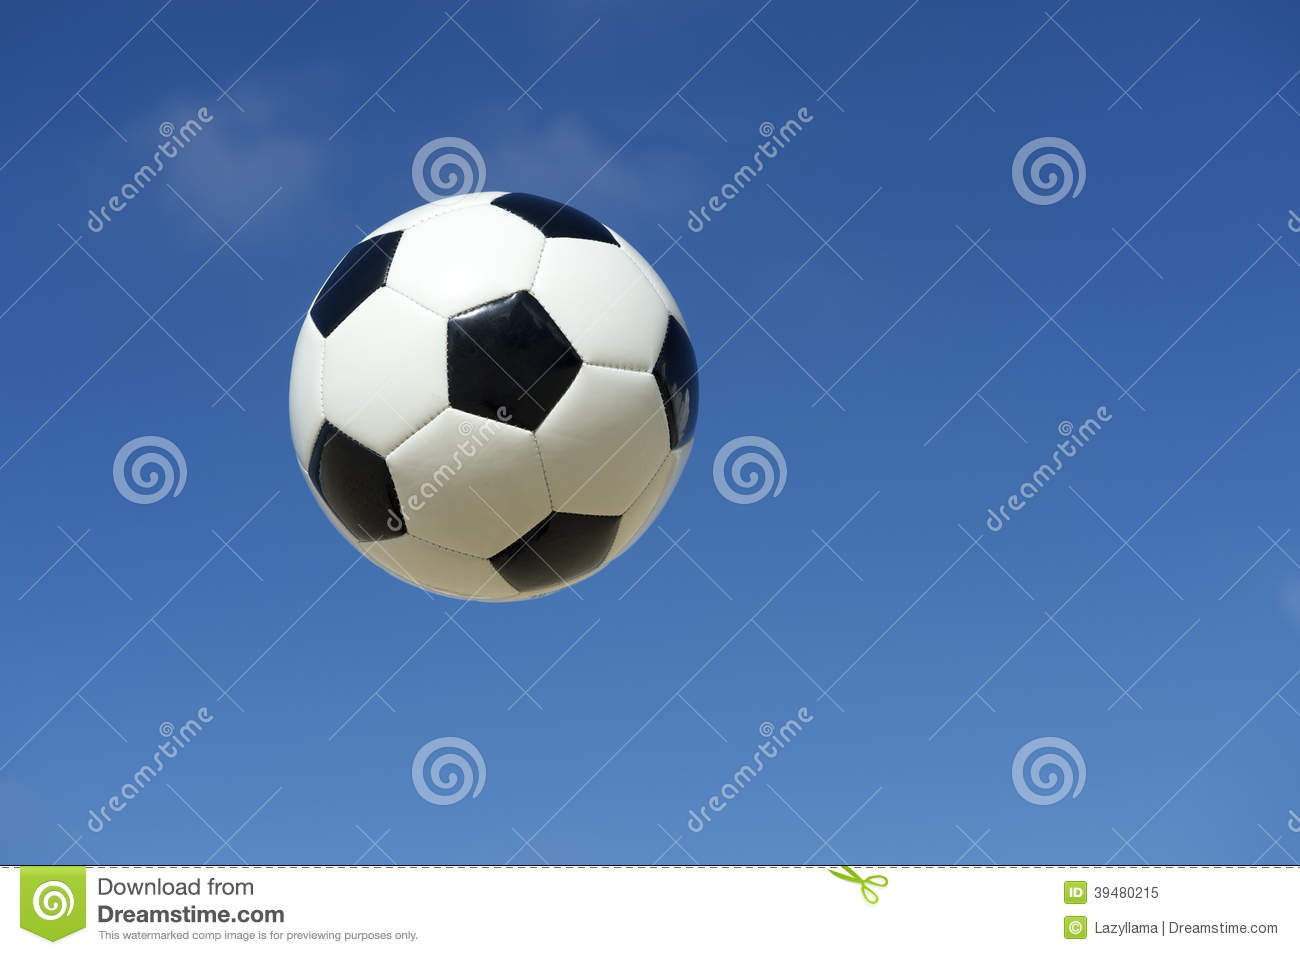 Classic Black and White Soccer Ball Football Flying in Blue Sky